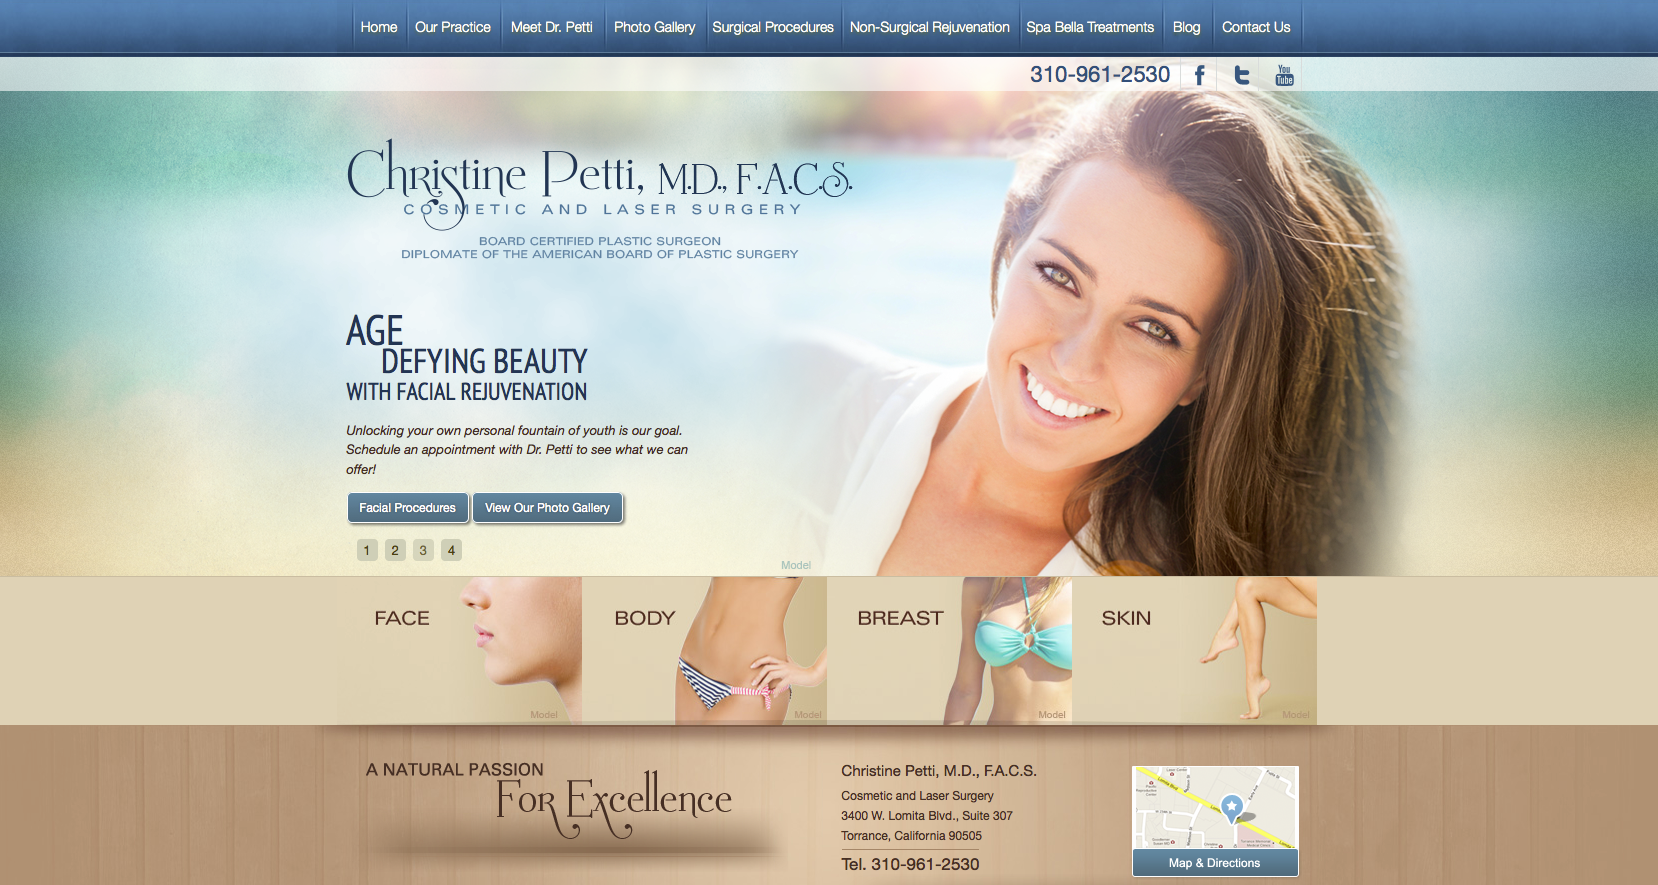 Plastic Surgery Practice in Torrance Launches New Website